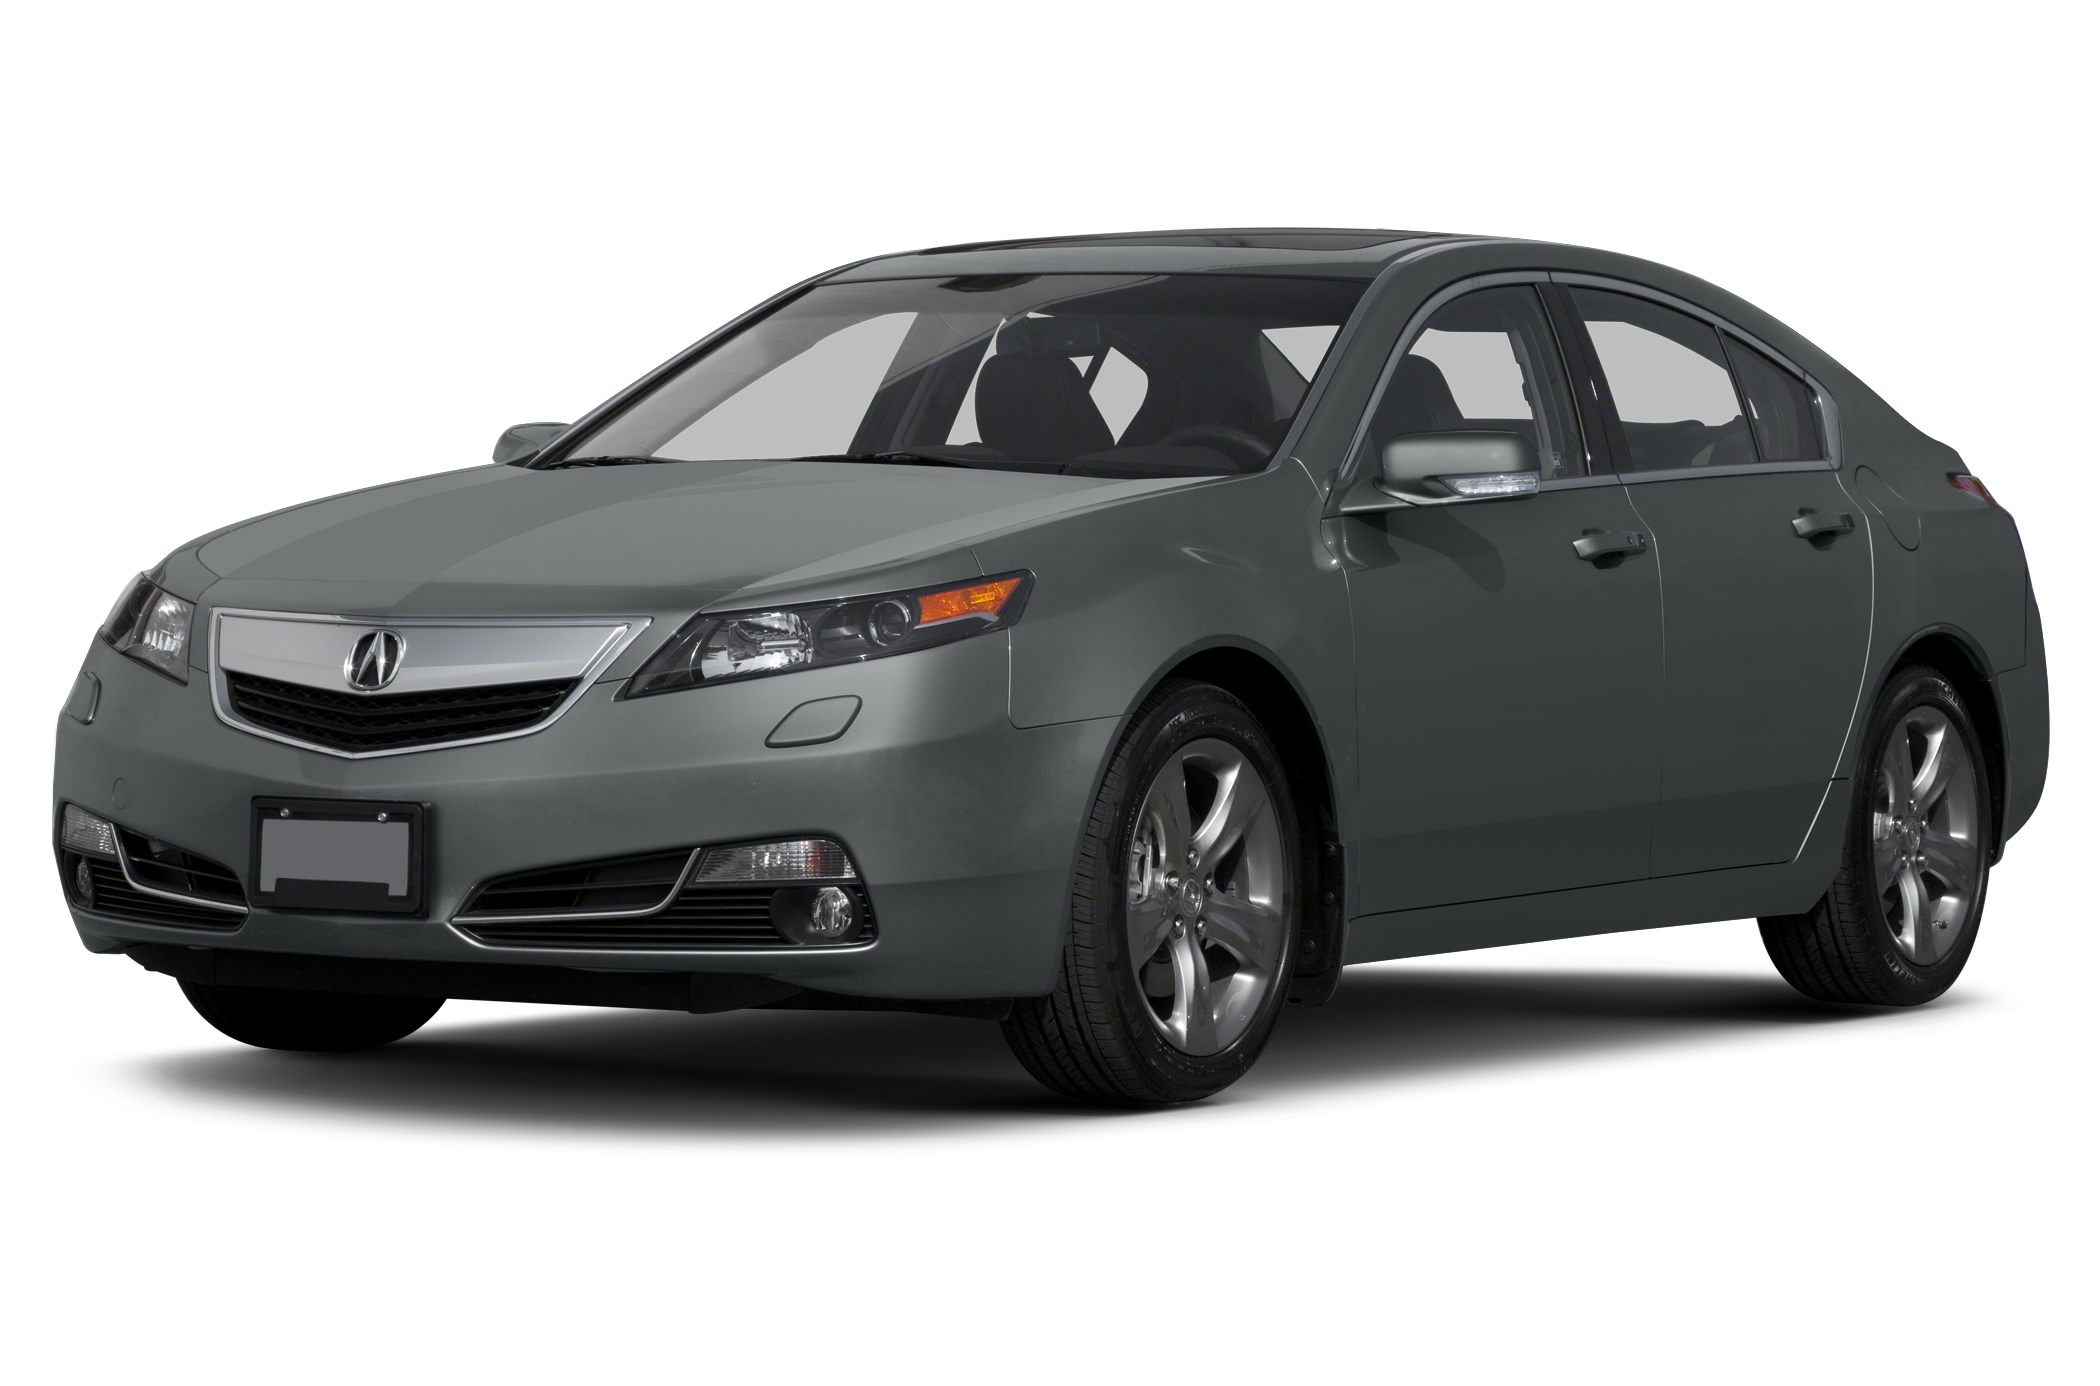 2013 Acura TL 3 7 4dr All wheel Drive Sedan Specs and Prices